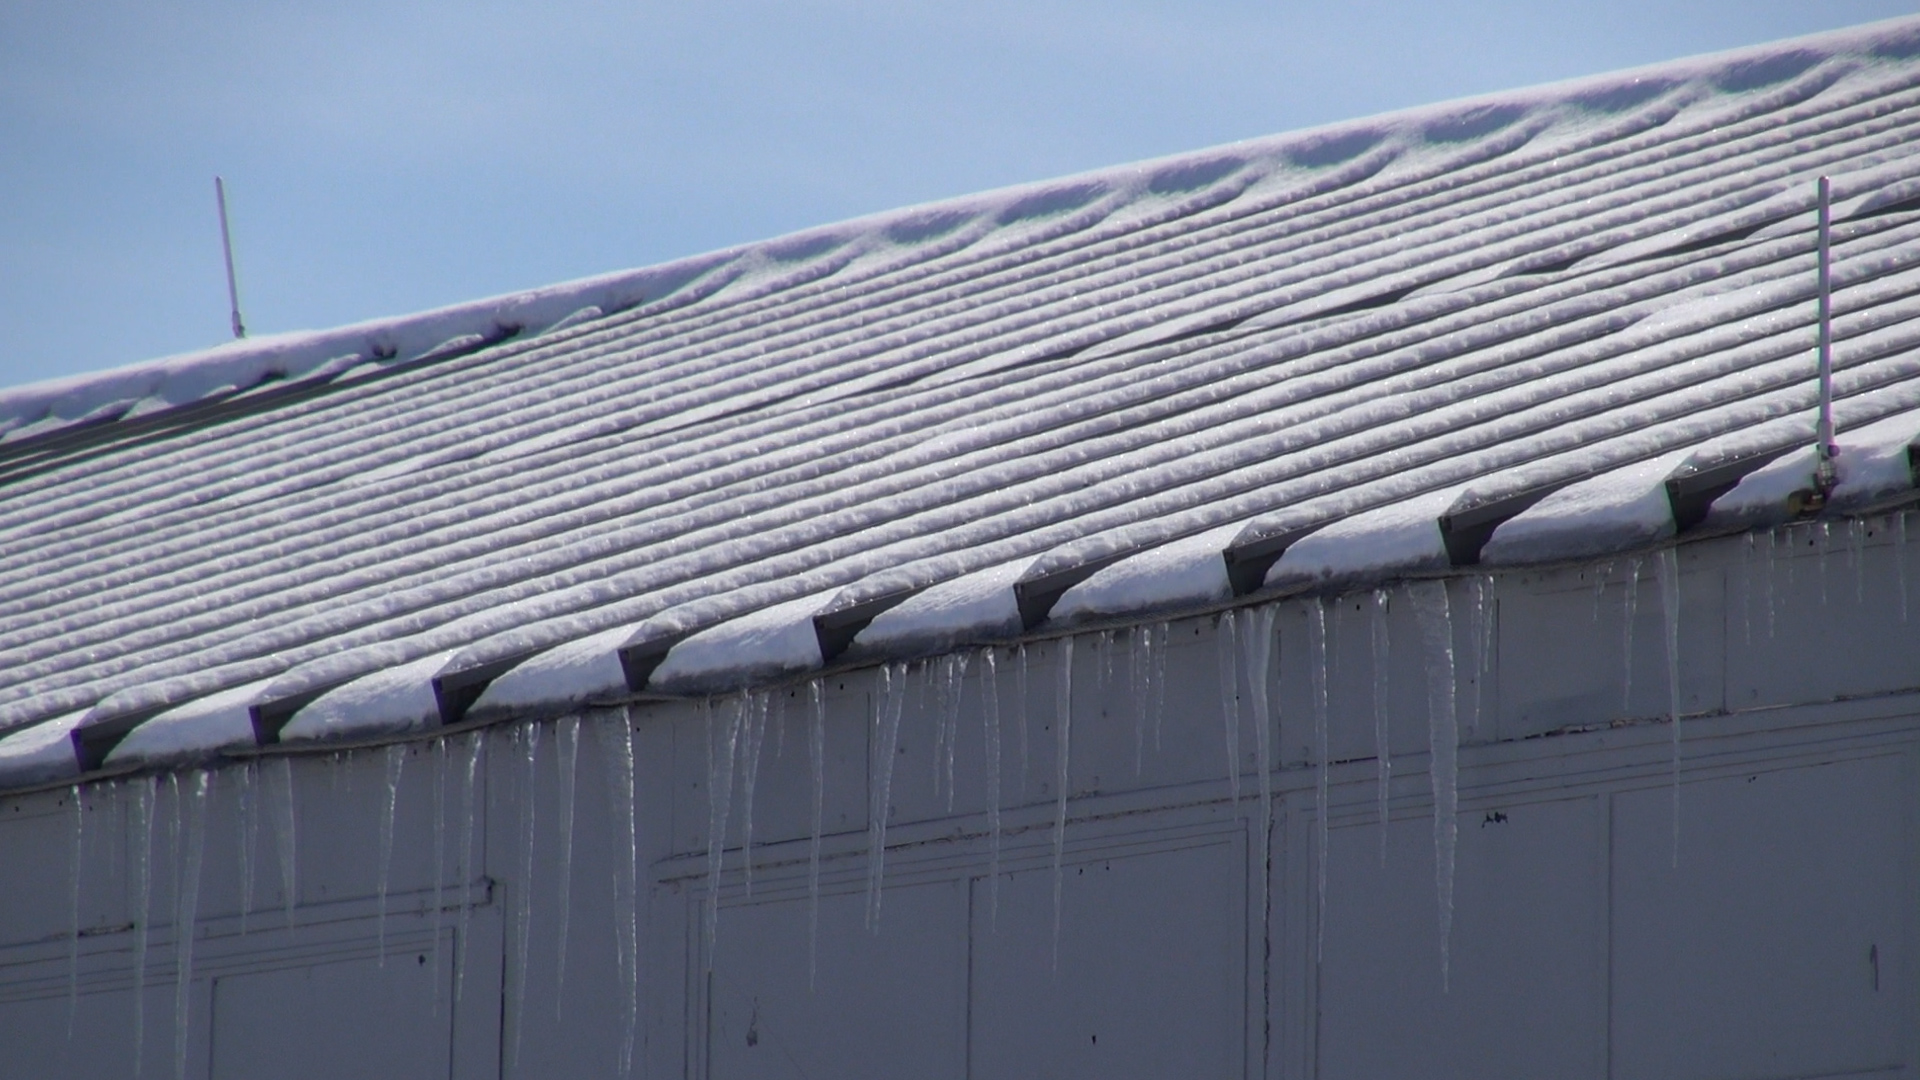 snow and ice on a roof